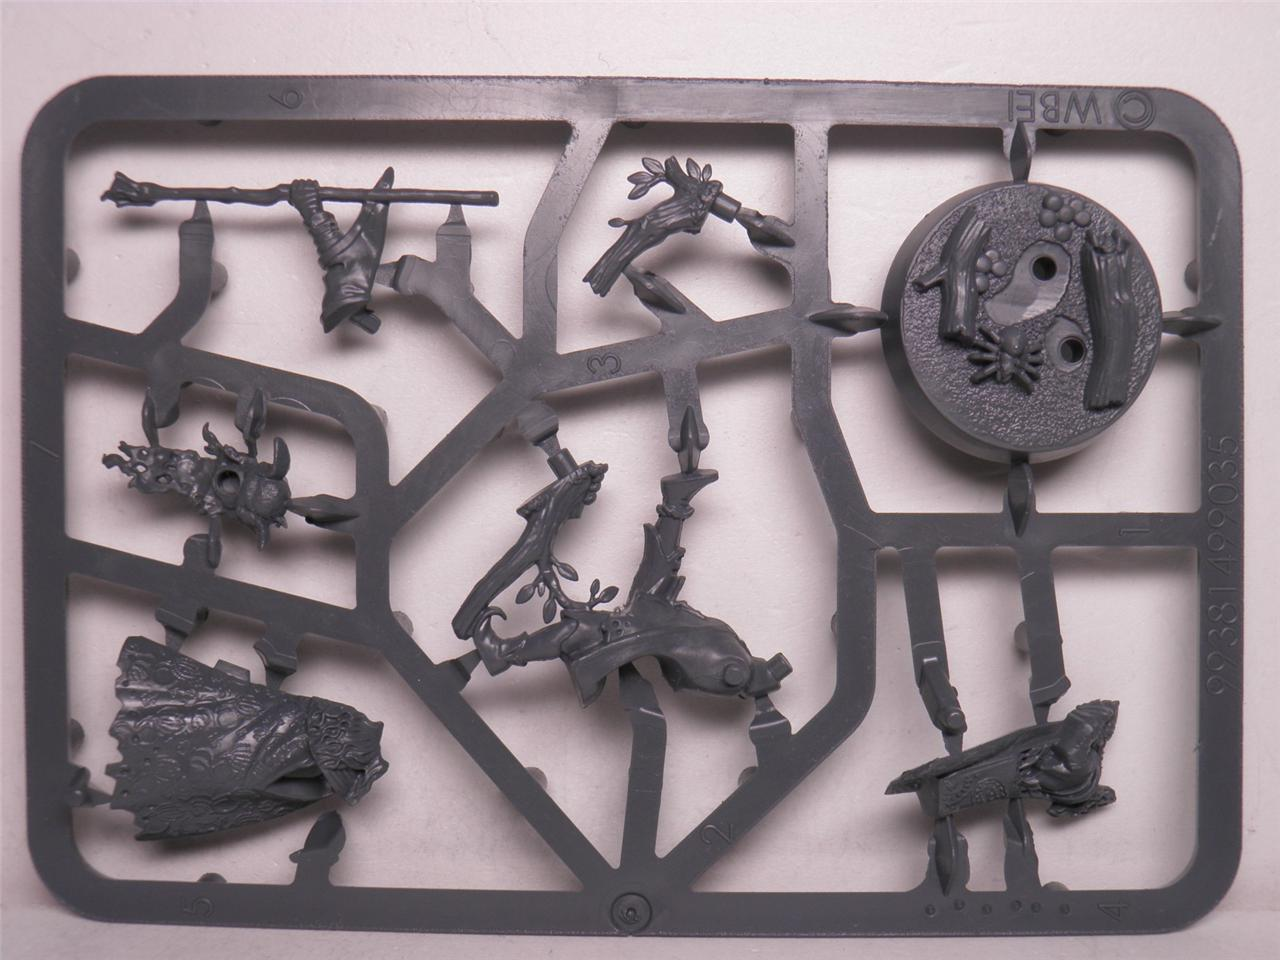 Radagast-the-Brown-Limited-Edition-New-on-sprue-The-Hobbit-LOTR